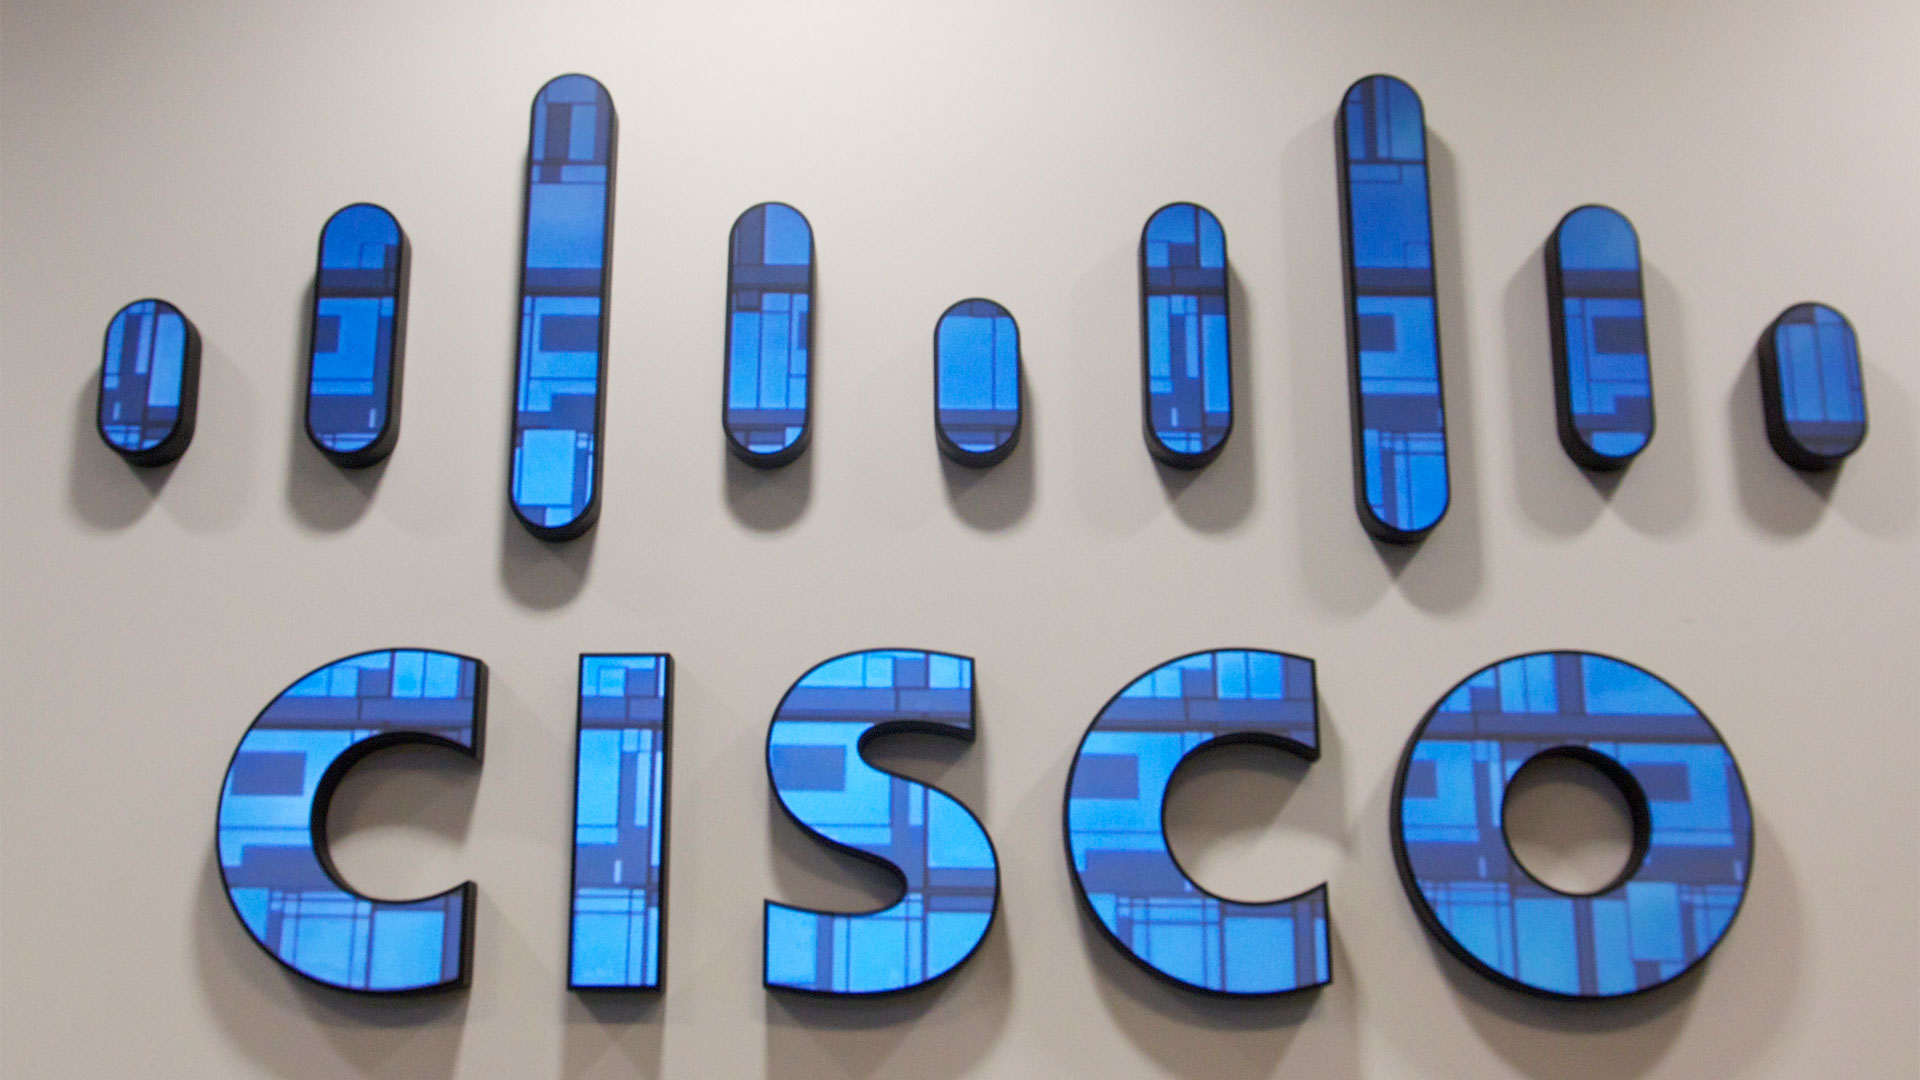 Cisco Video Surveillance Manager Allows Attackers to Login